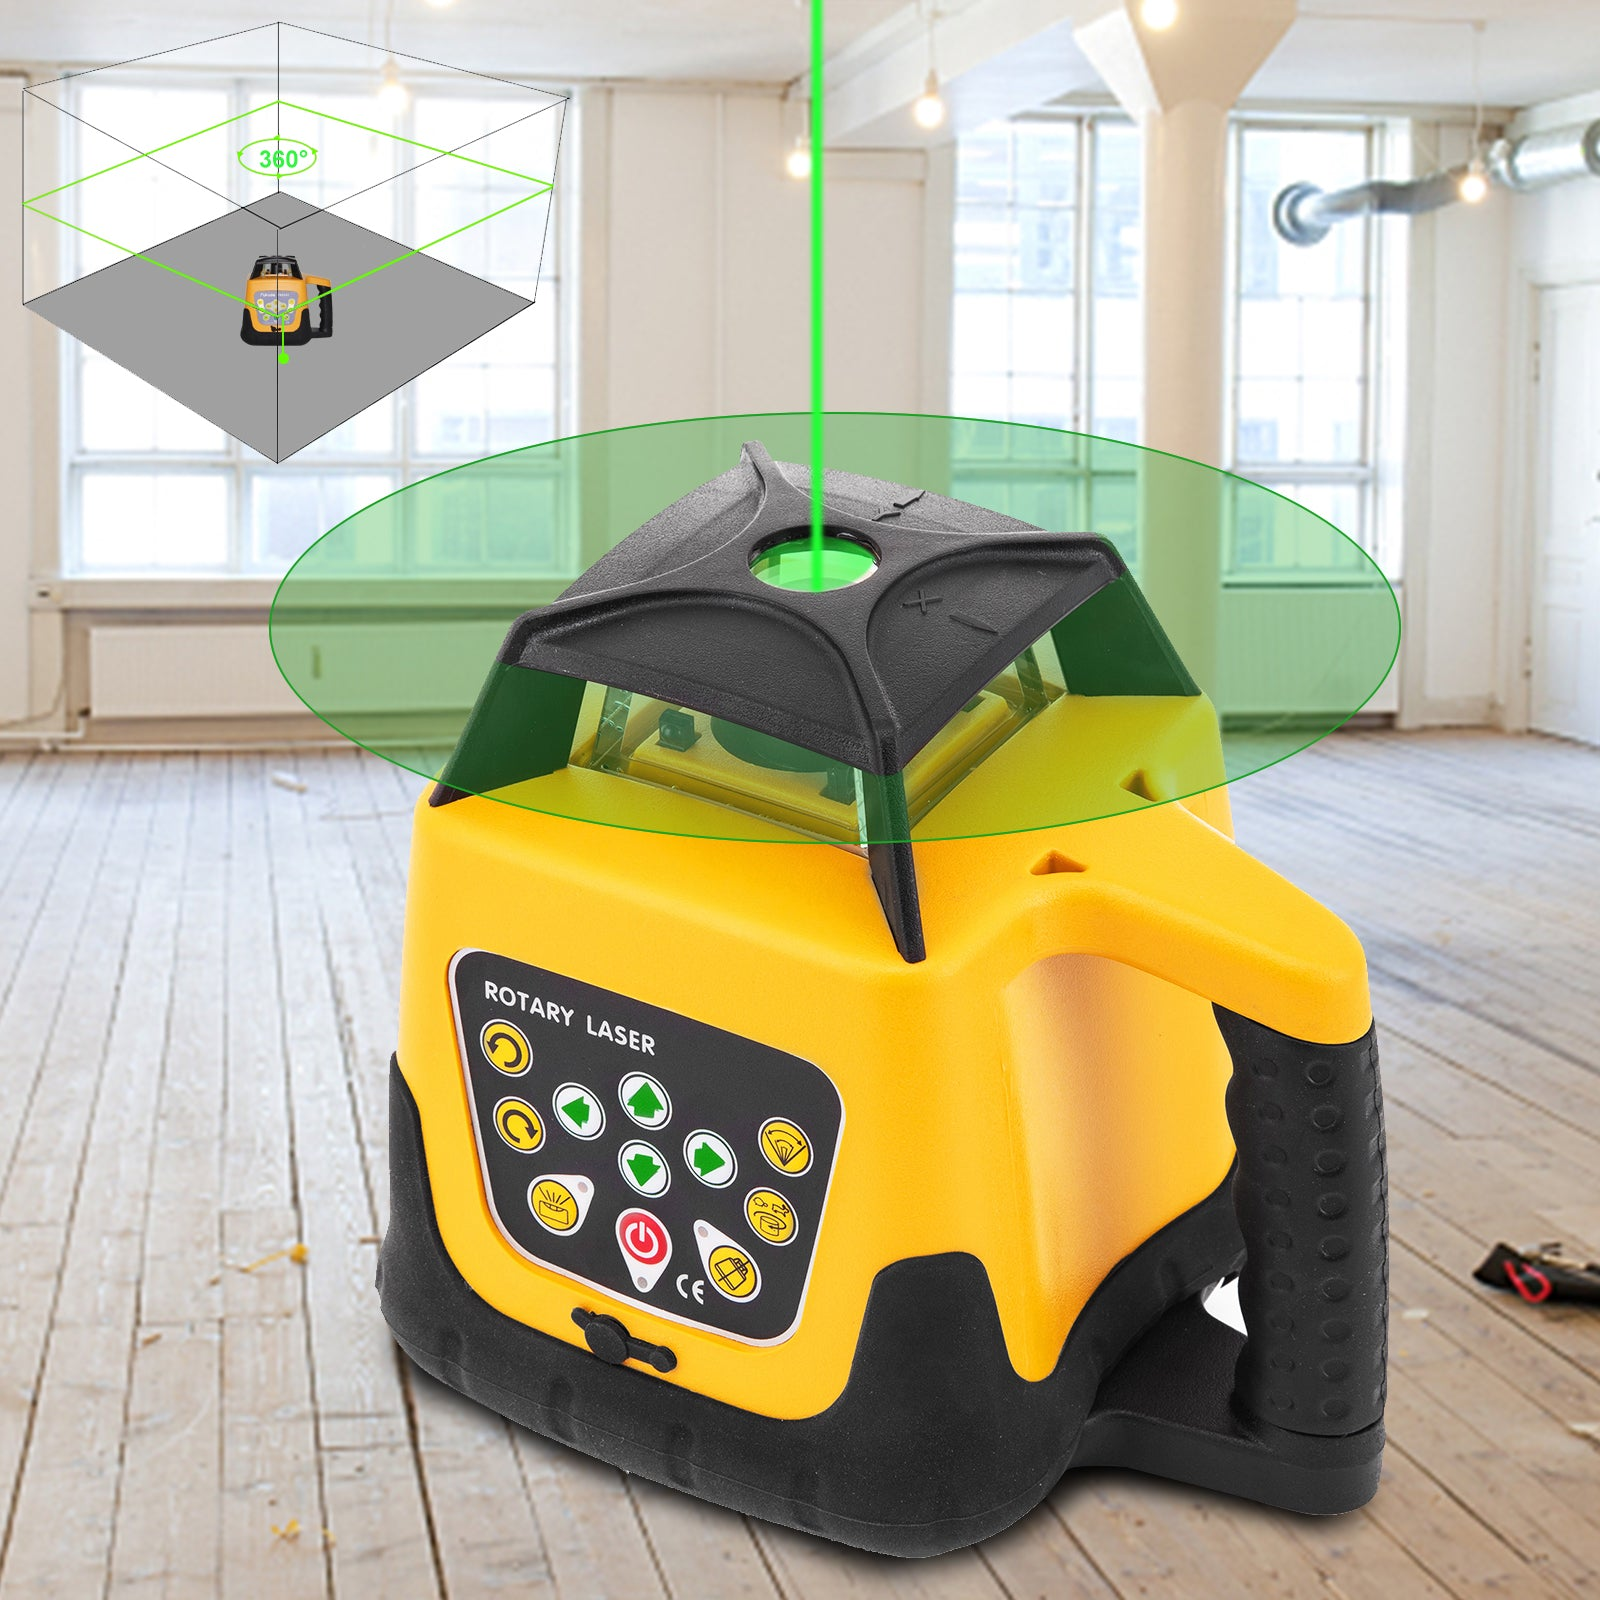 Rotary Laser Level Green Beam 500m Range Slope Adjustable 360° Spinning Accurate